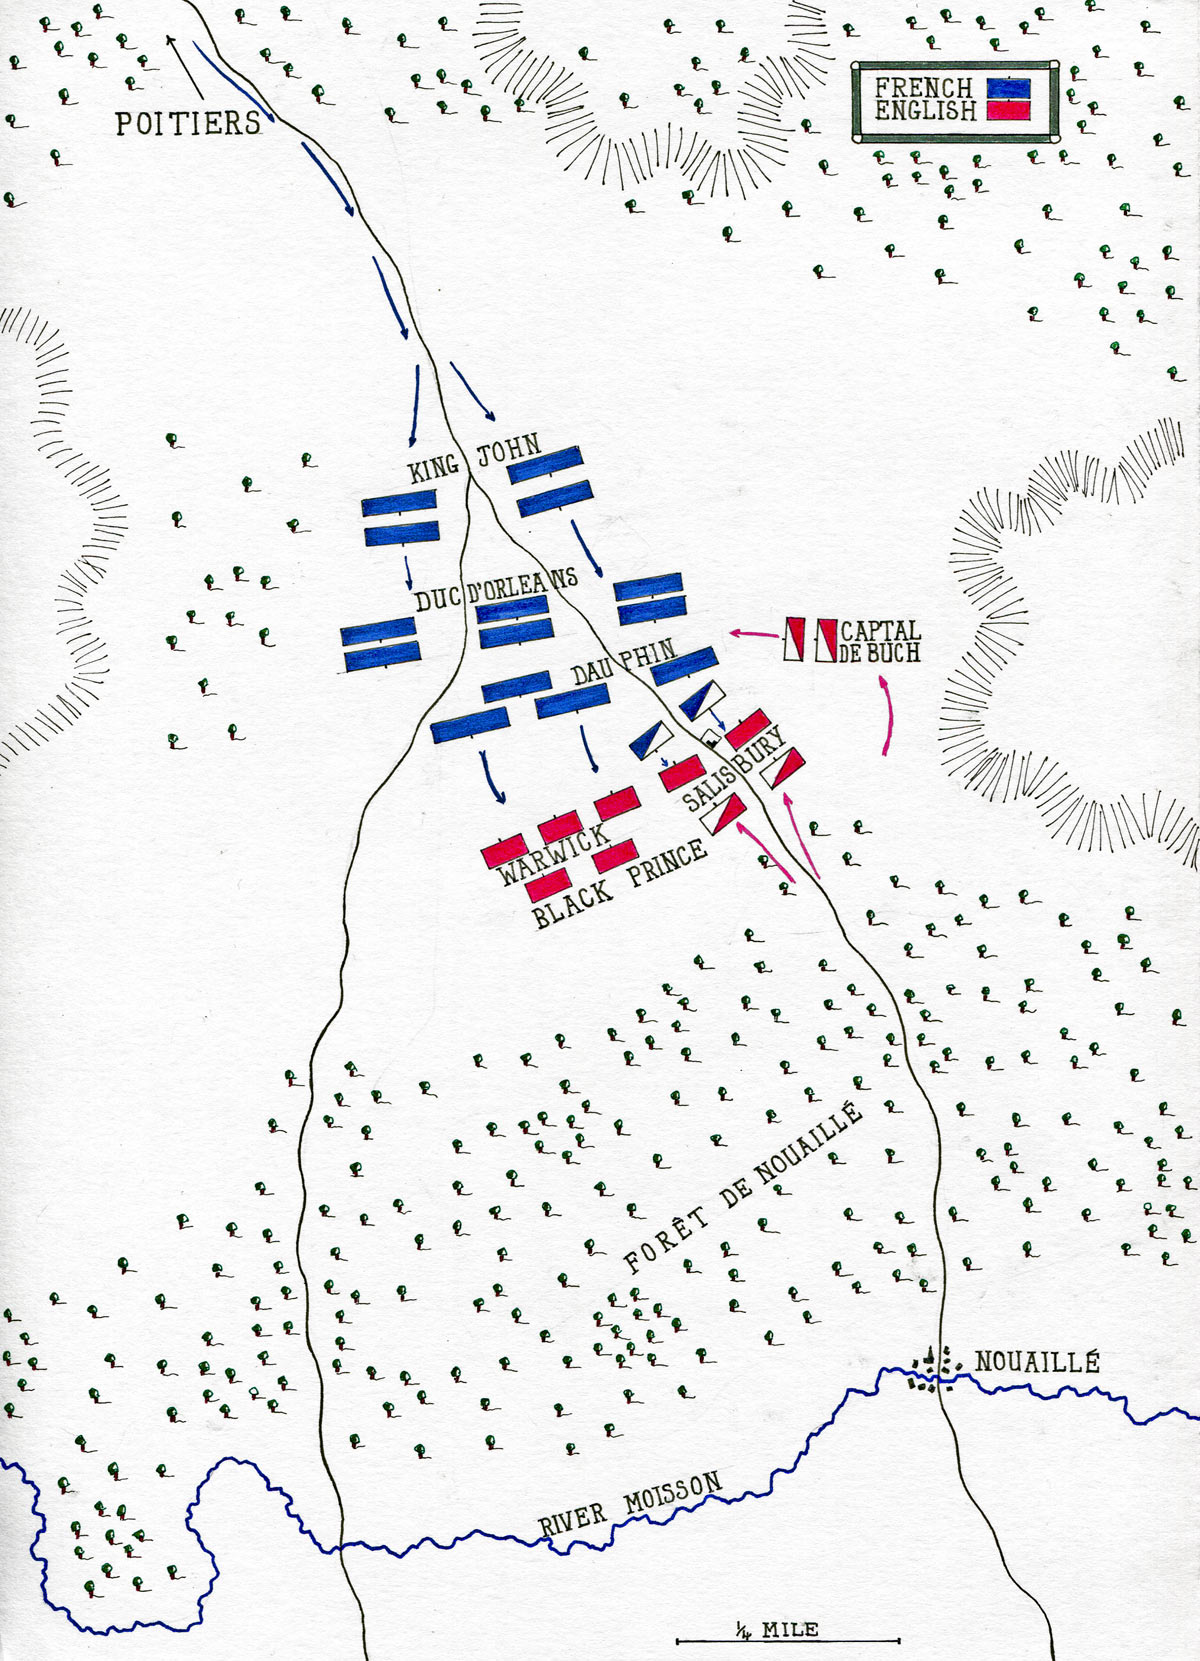 Battle of Poitiers on 19th September 1356 in the Hundred Years: map by John Fawkes